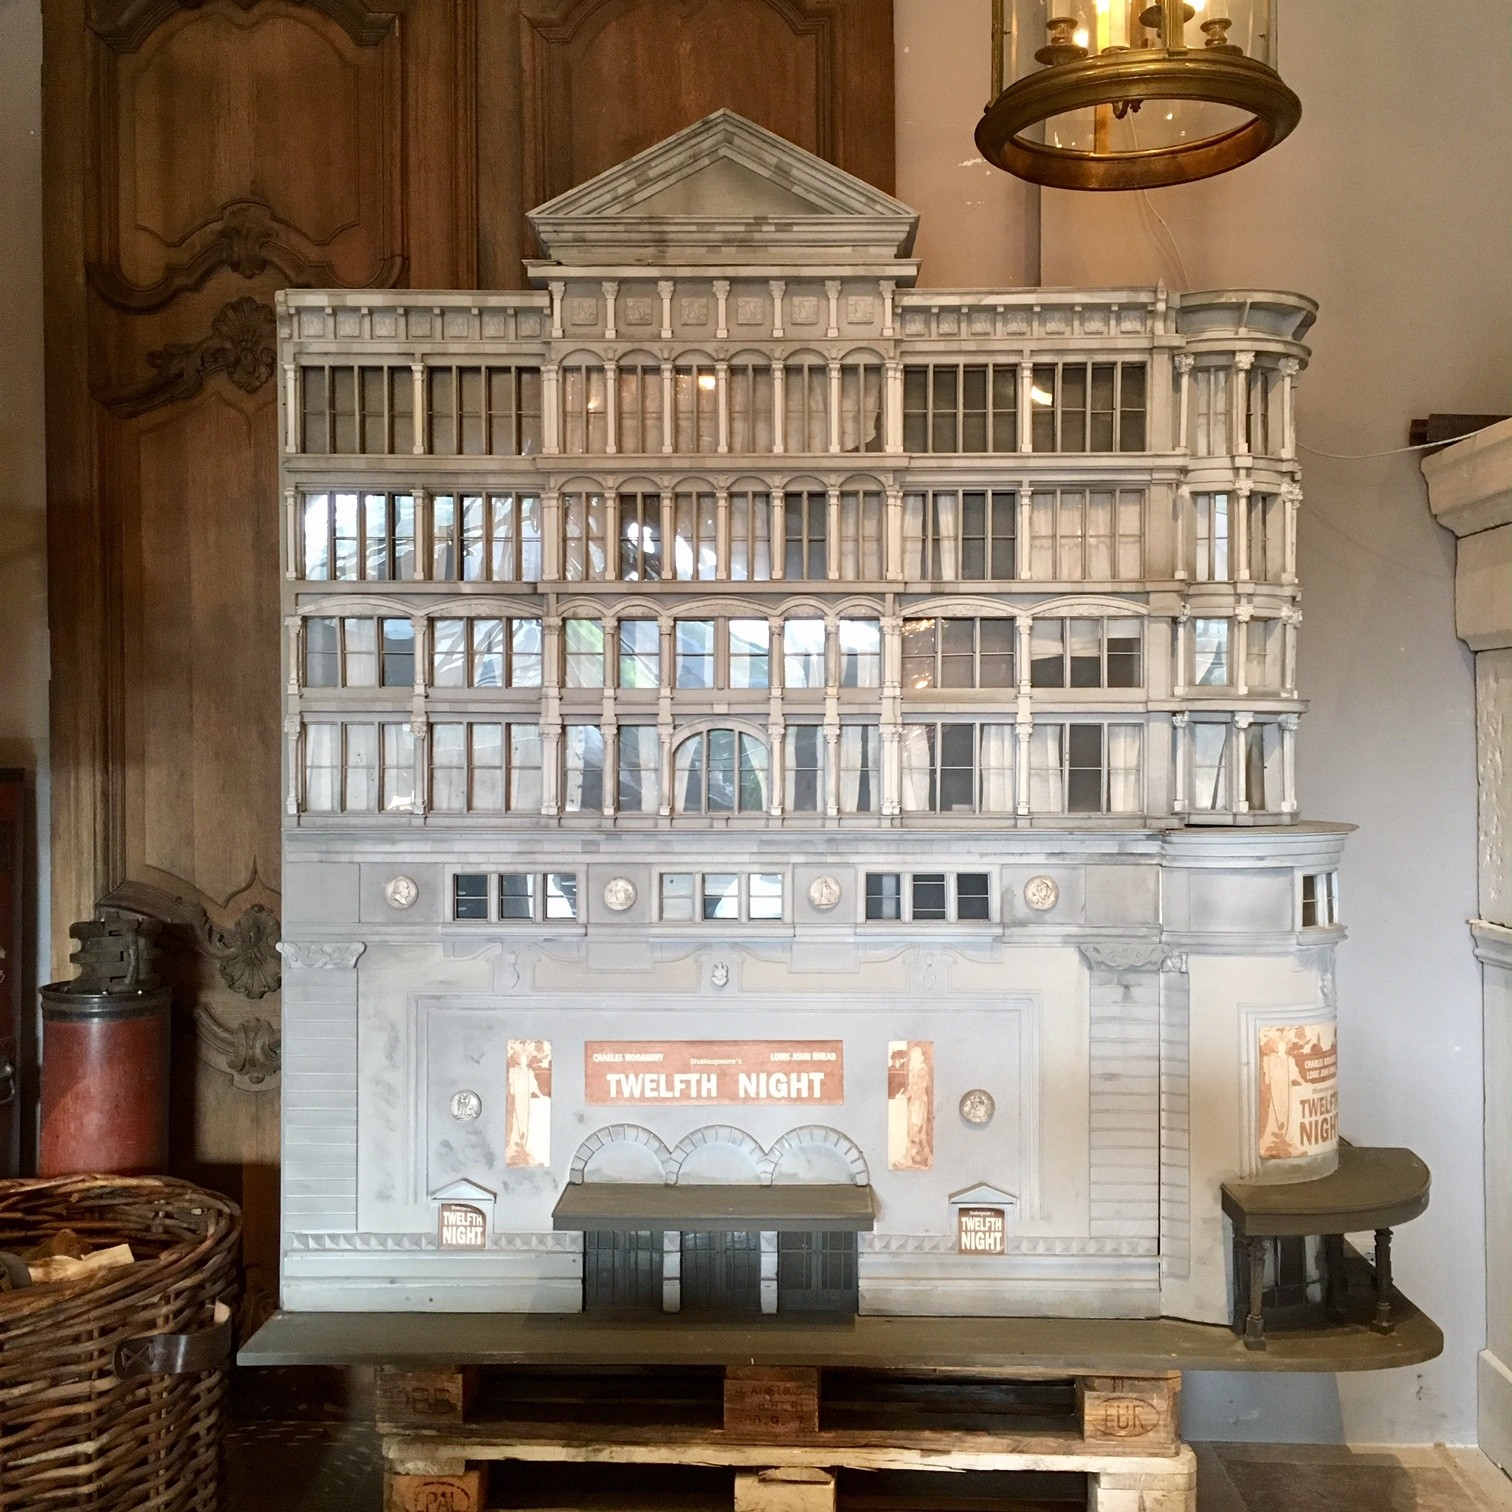 Groot architectonisch decoratief model van een theater